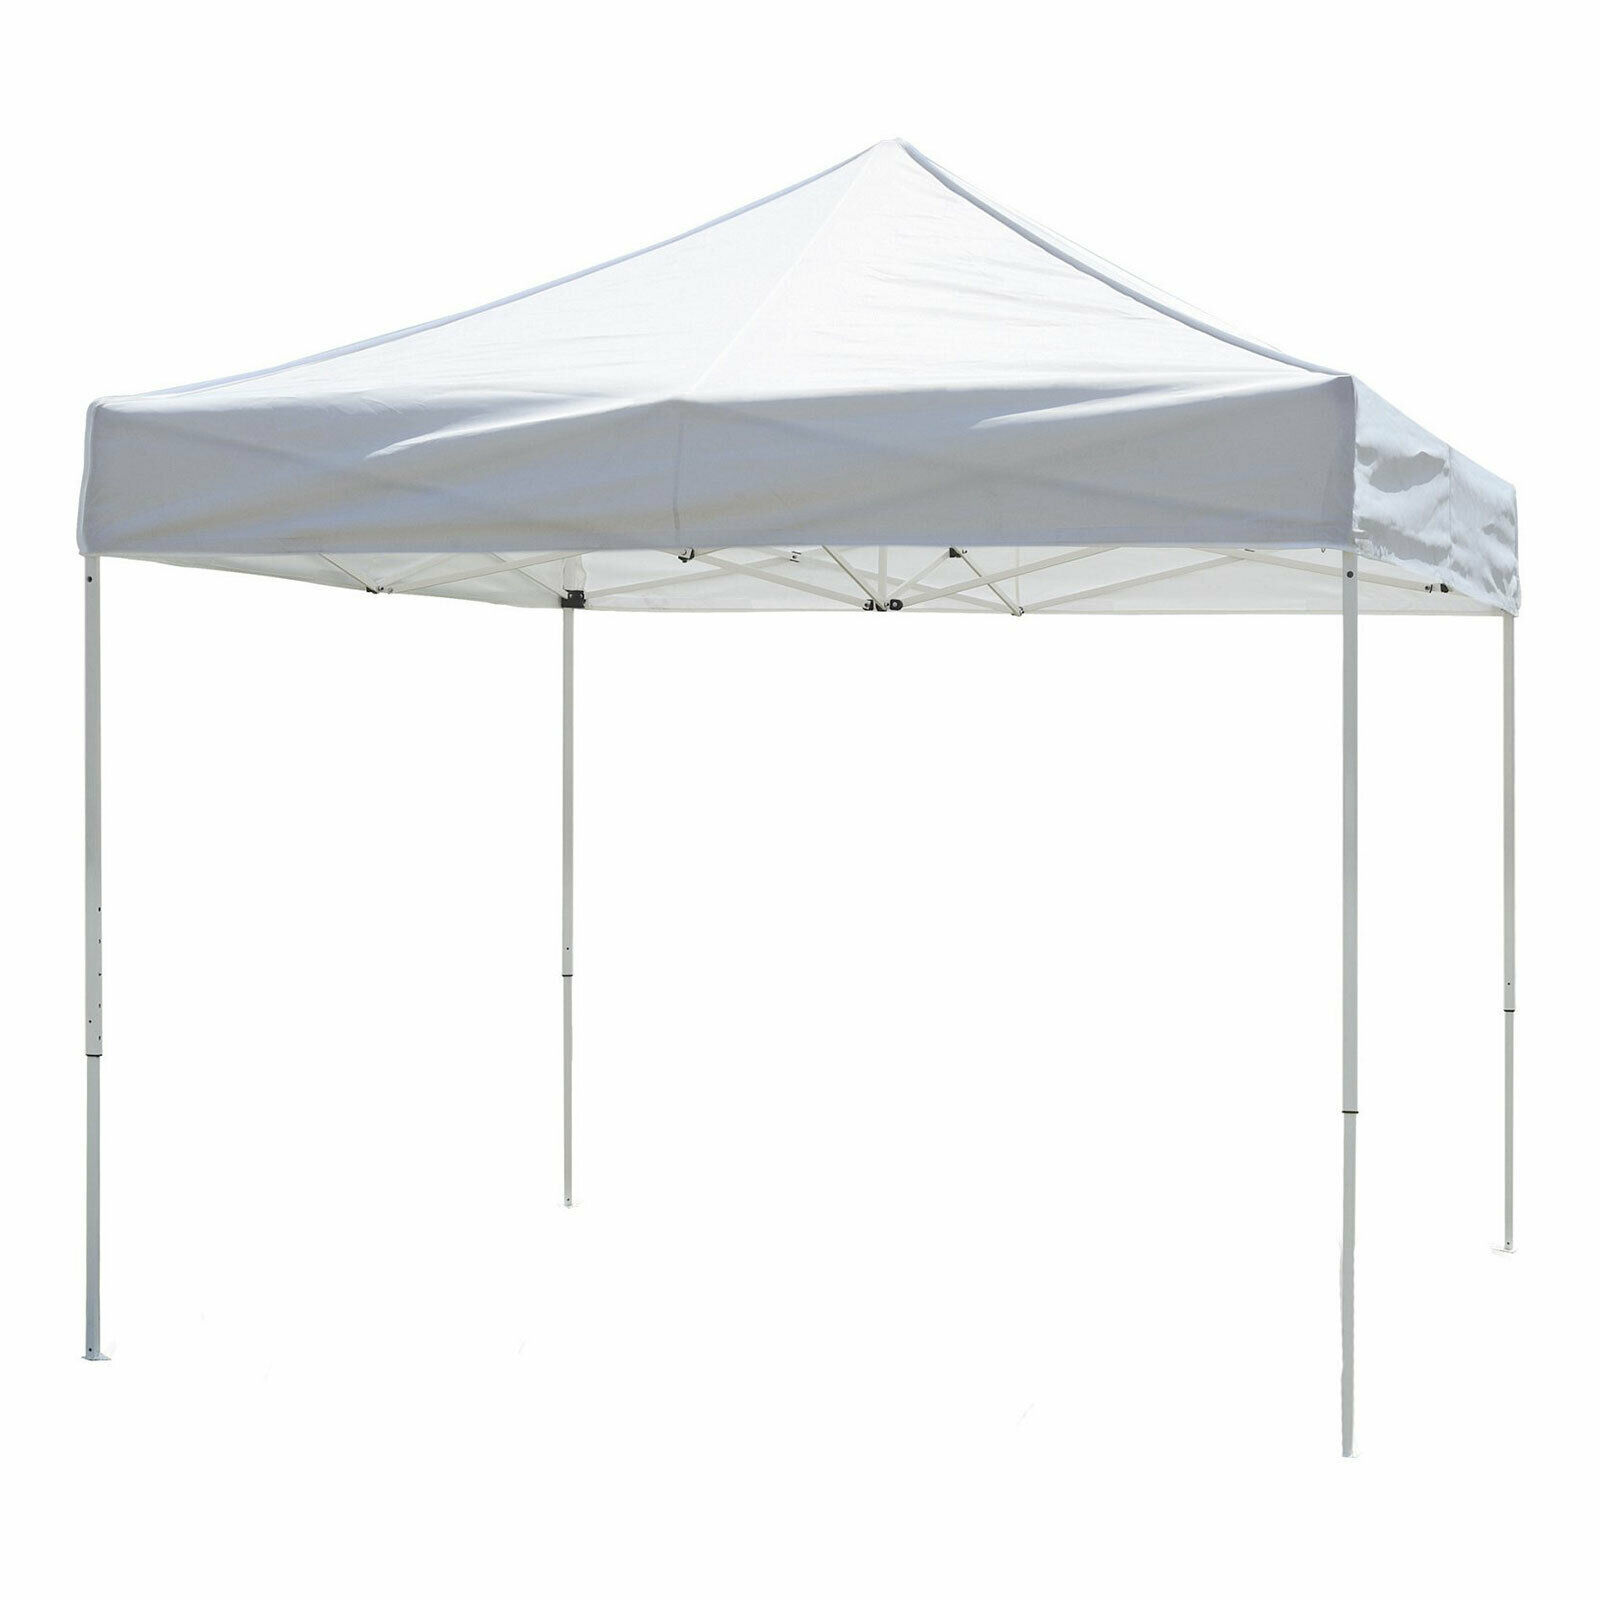 Z-Shade  Venture 10 x 10 Foot Lawn, Garden & Event Outdoor Portable Canopy, White  online cheap